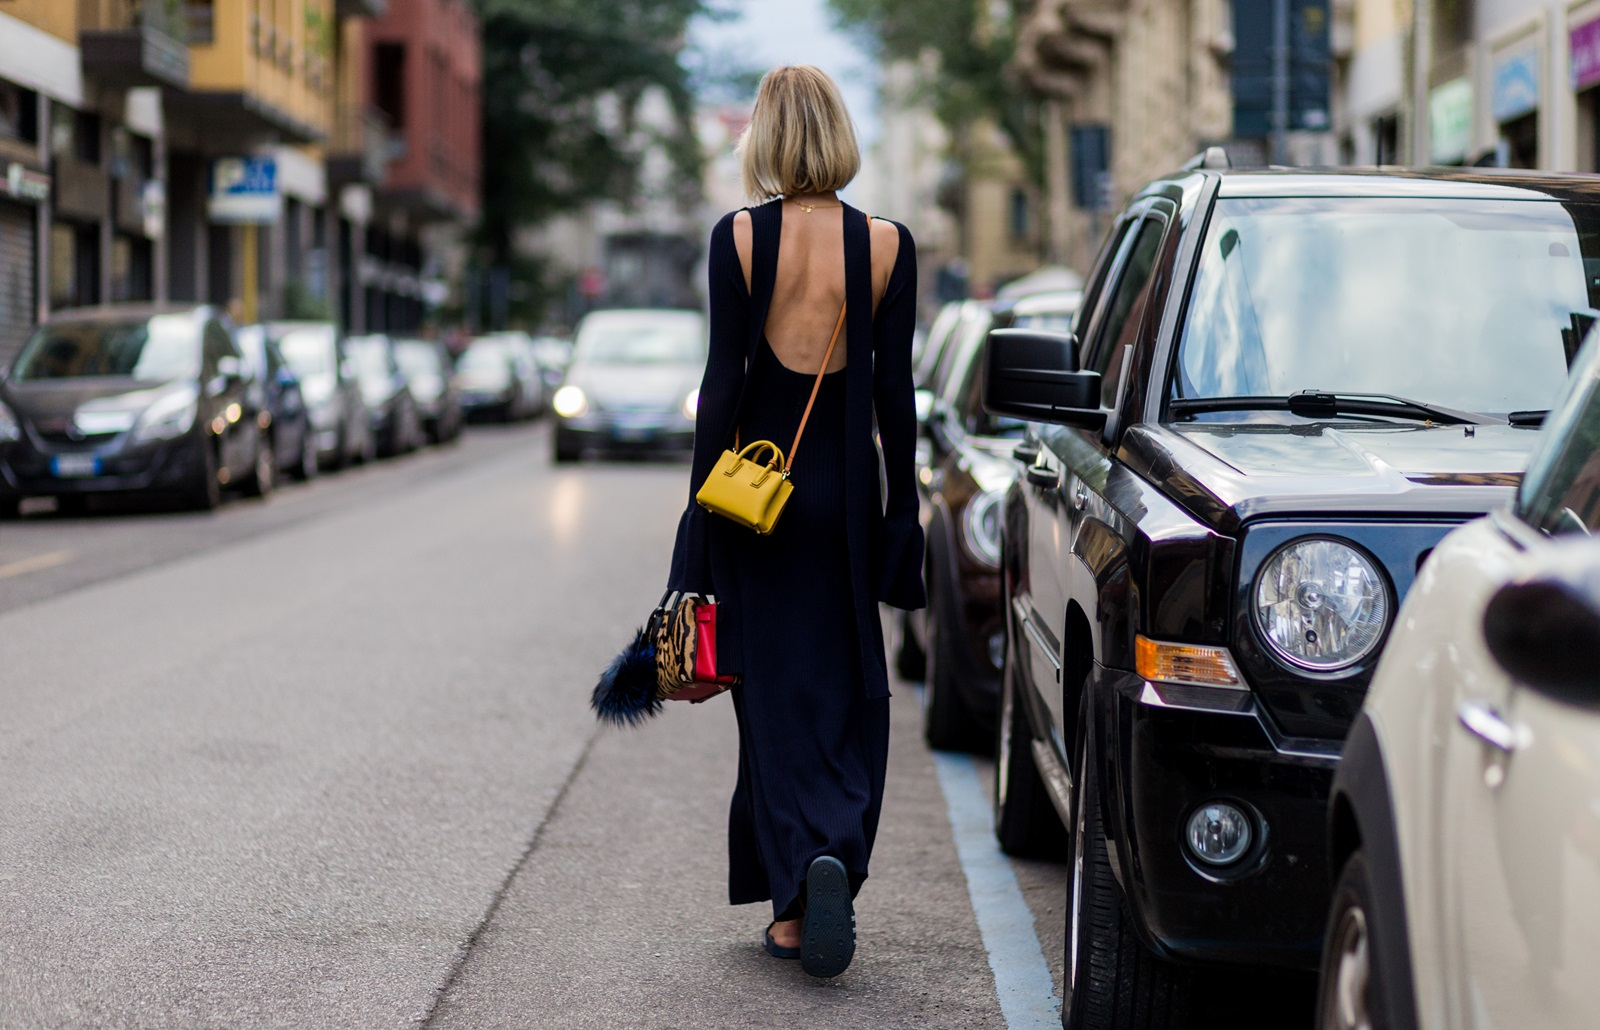 MILAN, ITALY - SEPTEMBER 21: Lisa Hahnbueck (@lisarvd) wearing a backless Knitdress with big sleeves H&M Trend, Milla Gepard Tote Mini + Milla Micro Bag / X-Mini, adiletten, is seen outside Alberta Ferretti during Milan Fashion Week Spring/Summer 2017 on September 21, 2016 in Milan, Italy. (Photo by Christian Vierig/Getty Images) *** Local Caption *** Lisa Hahnbueck